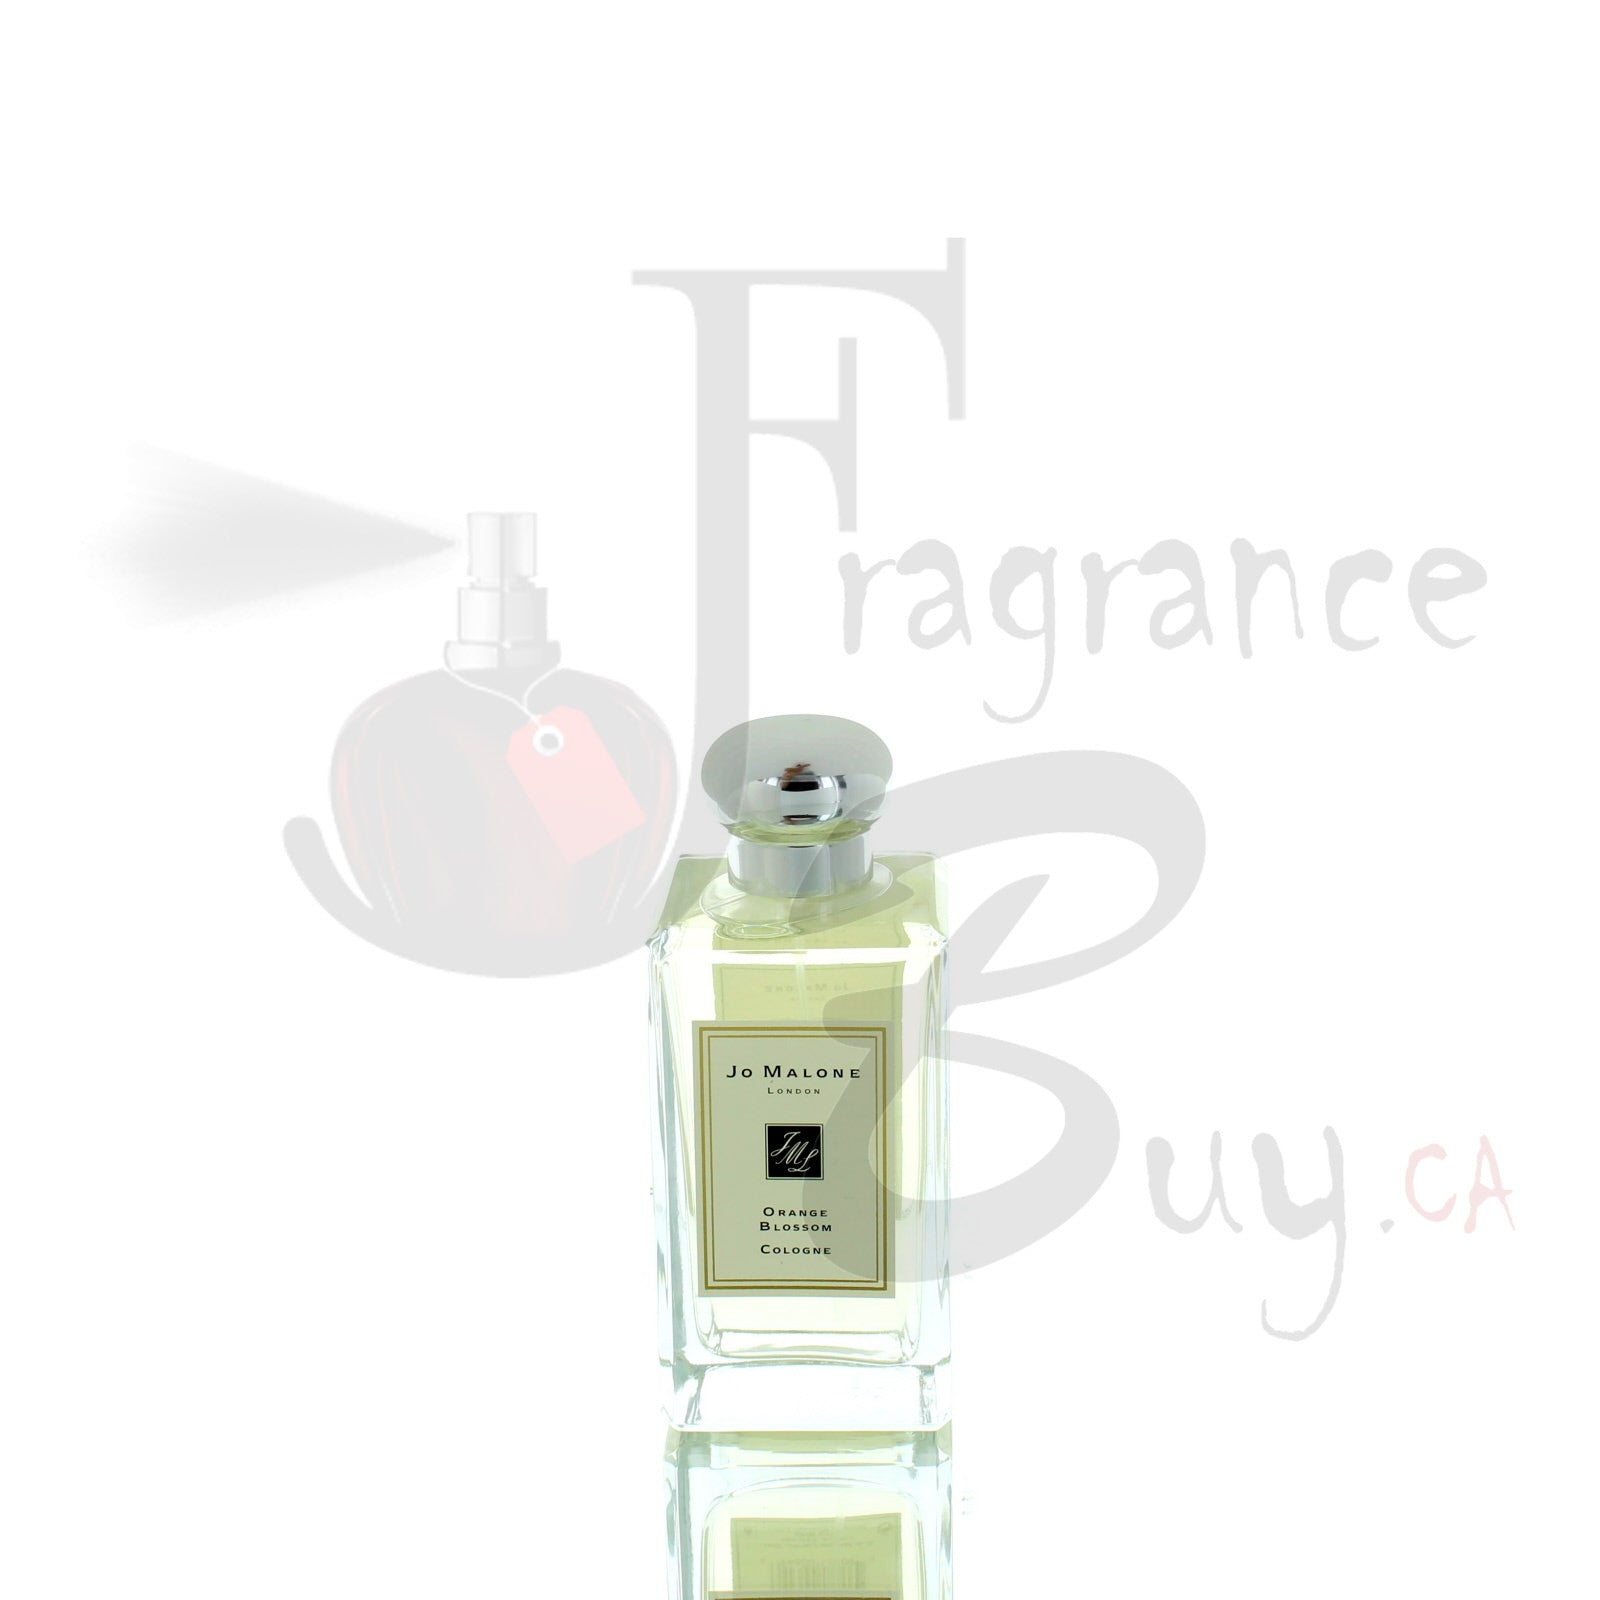 Jo Malone Orange Blossom For Man/Woman